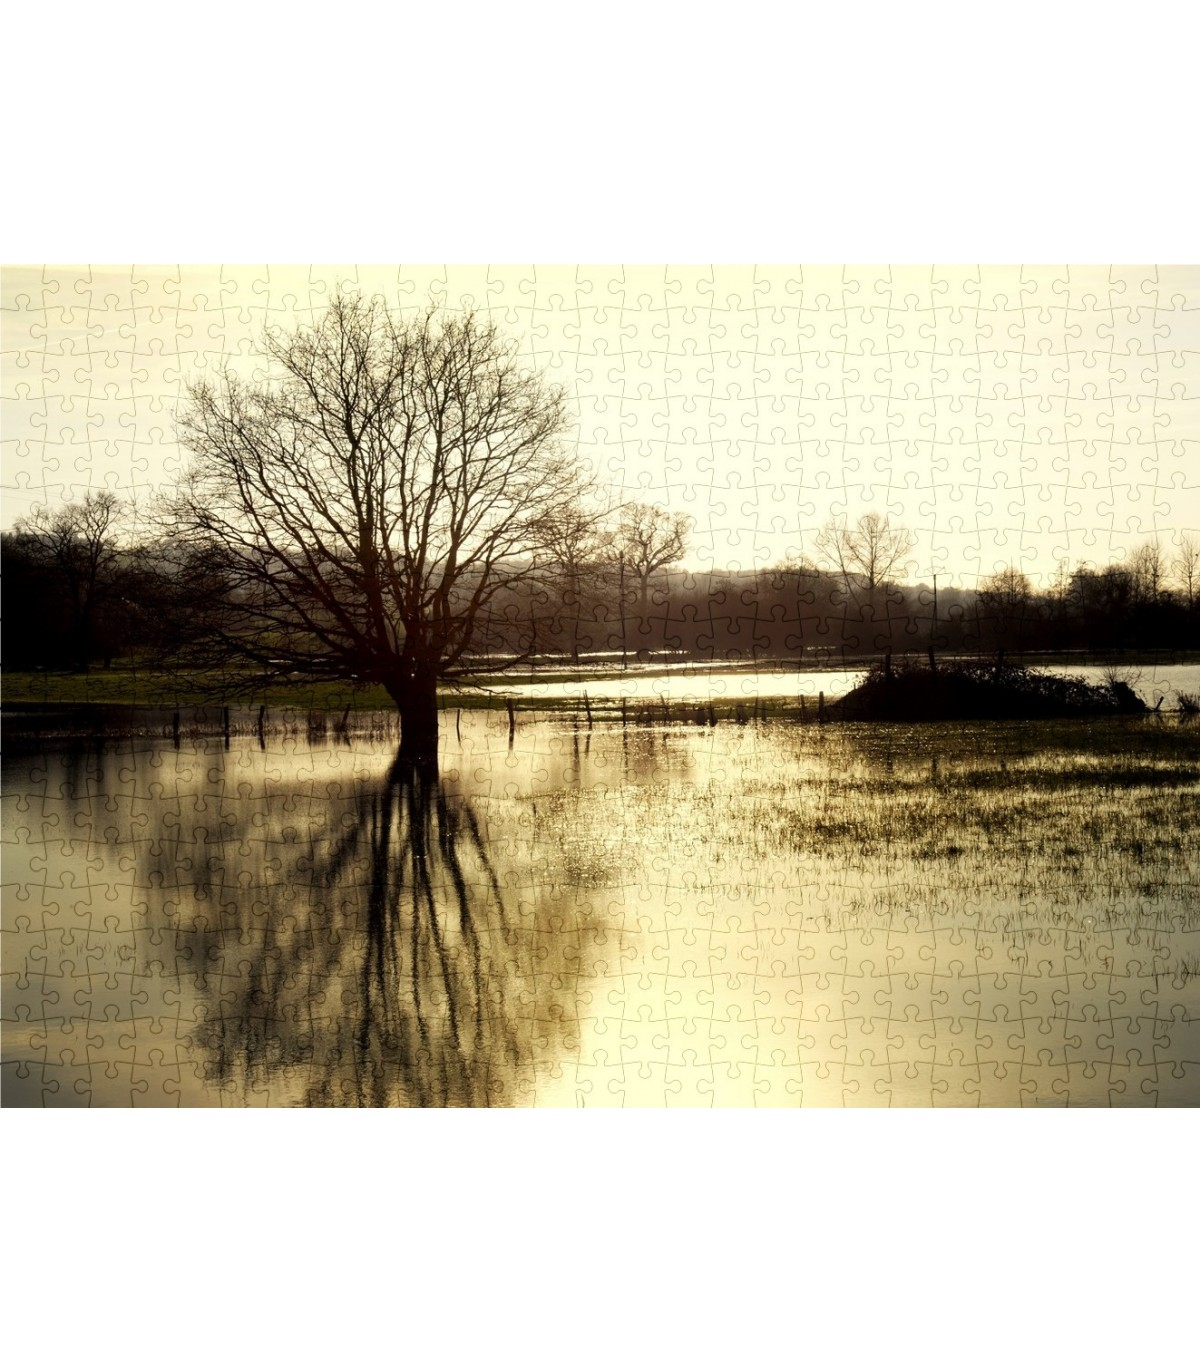 Puzzle paysage campagne